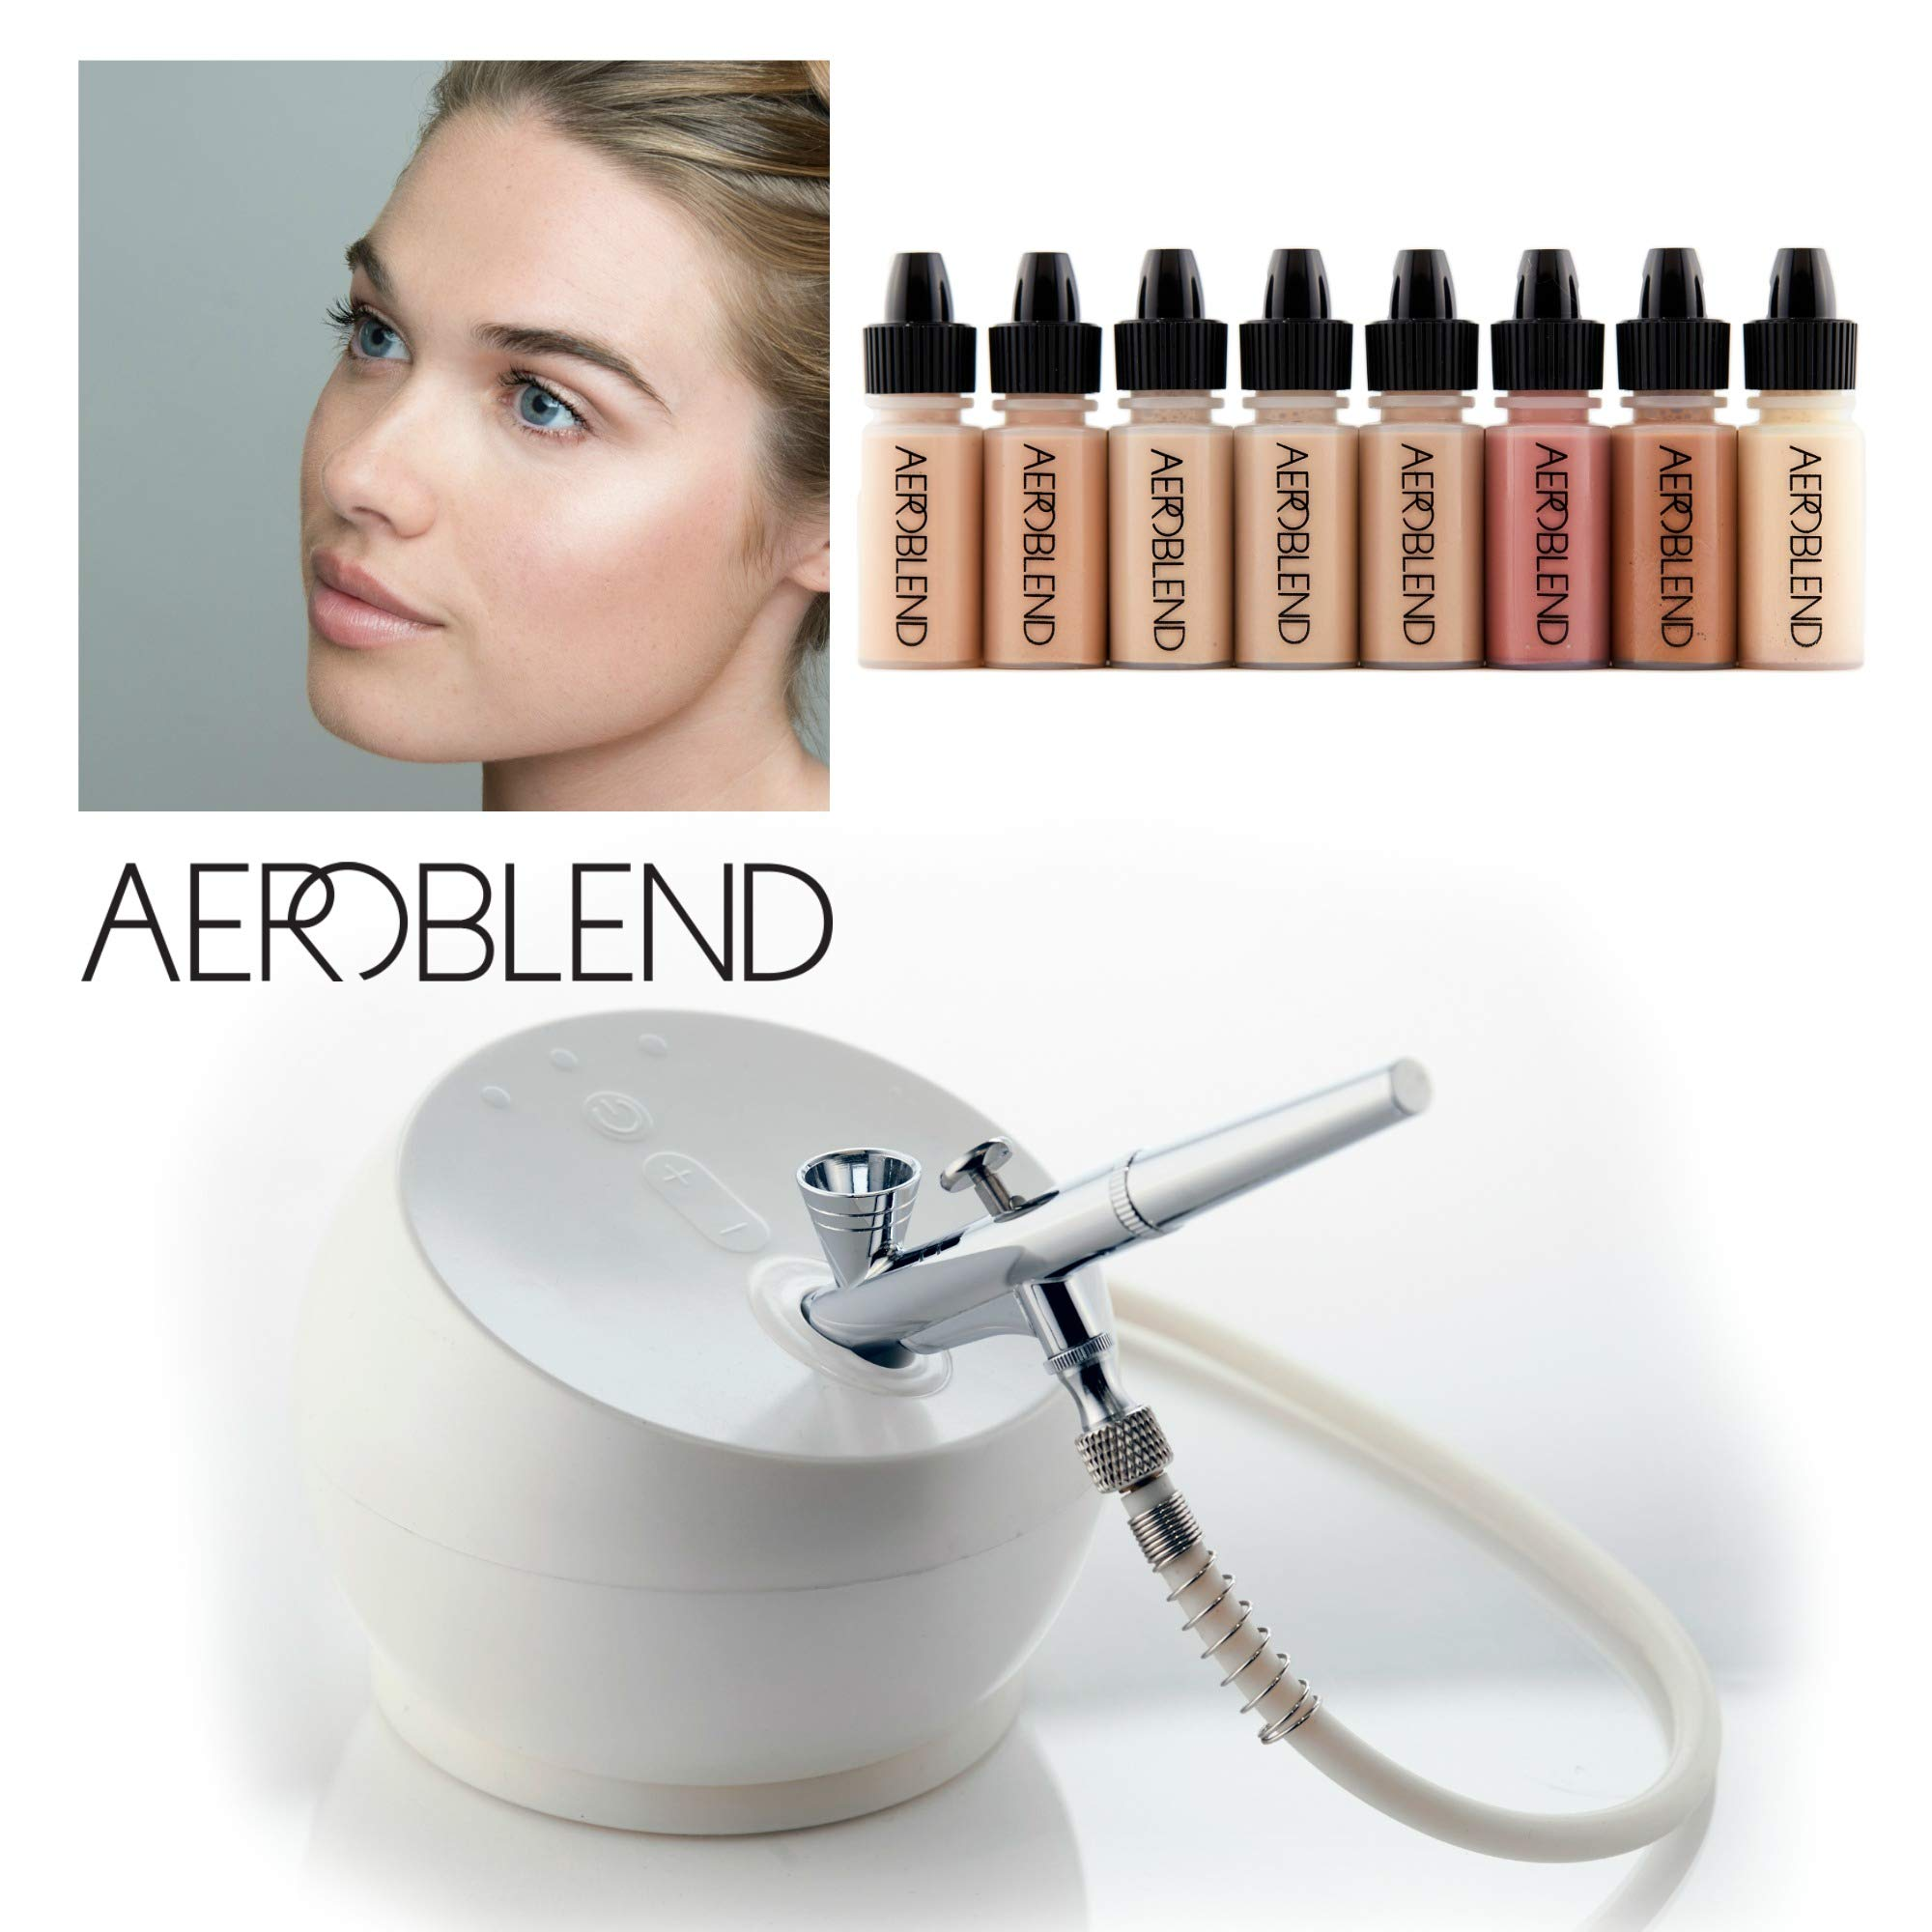 Aeroblend Airbrush Makeup Personal Starter Kit - Professional Cosmetic Airbrush Makeup System - Color Match Guarantee - Full 1-Year Warranty (Medium)